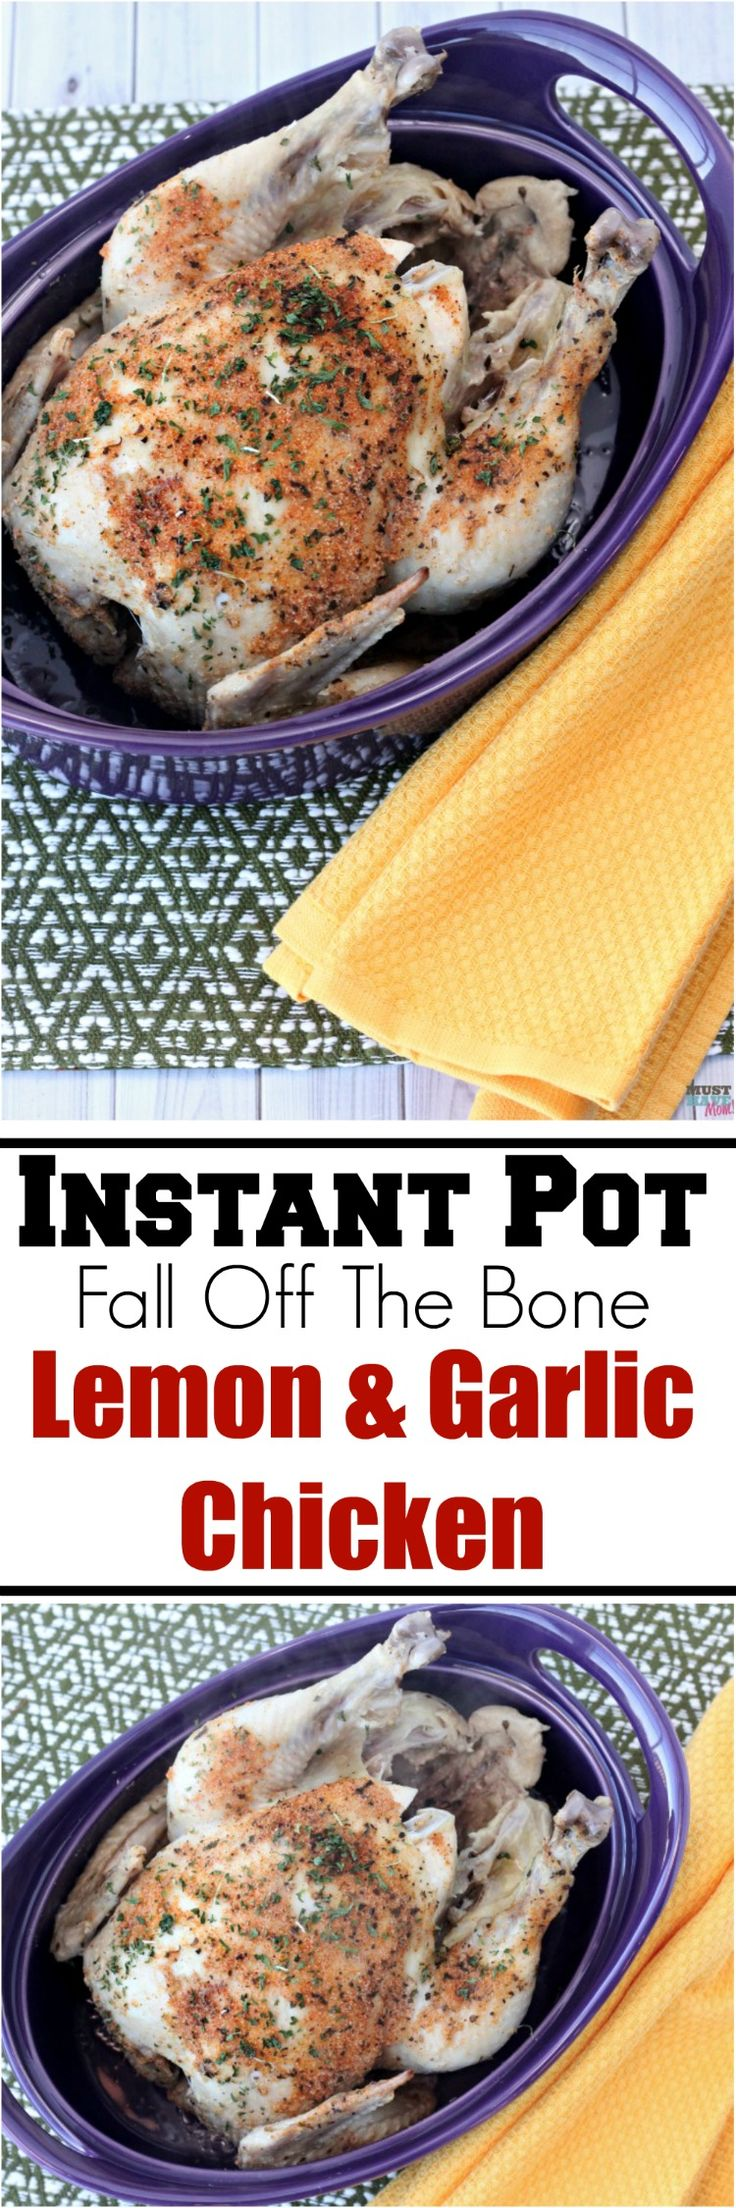 Instant Pot fall off the bone lemon and garlic chicken! Cook a whole chicken in 25 minutes in your pressure cooker! Pressure cooker chicken dinner is so quick